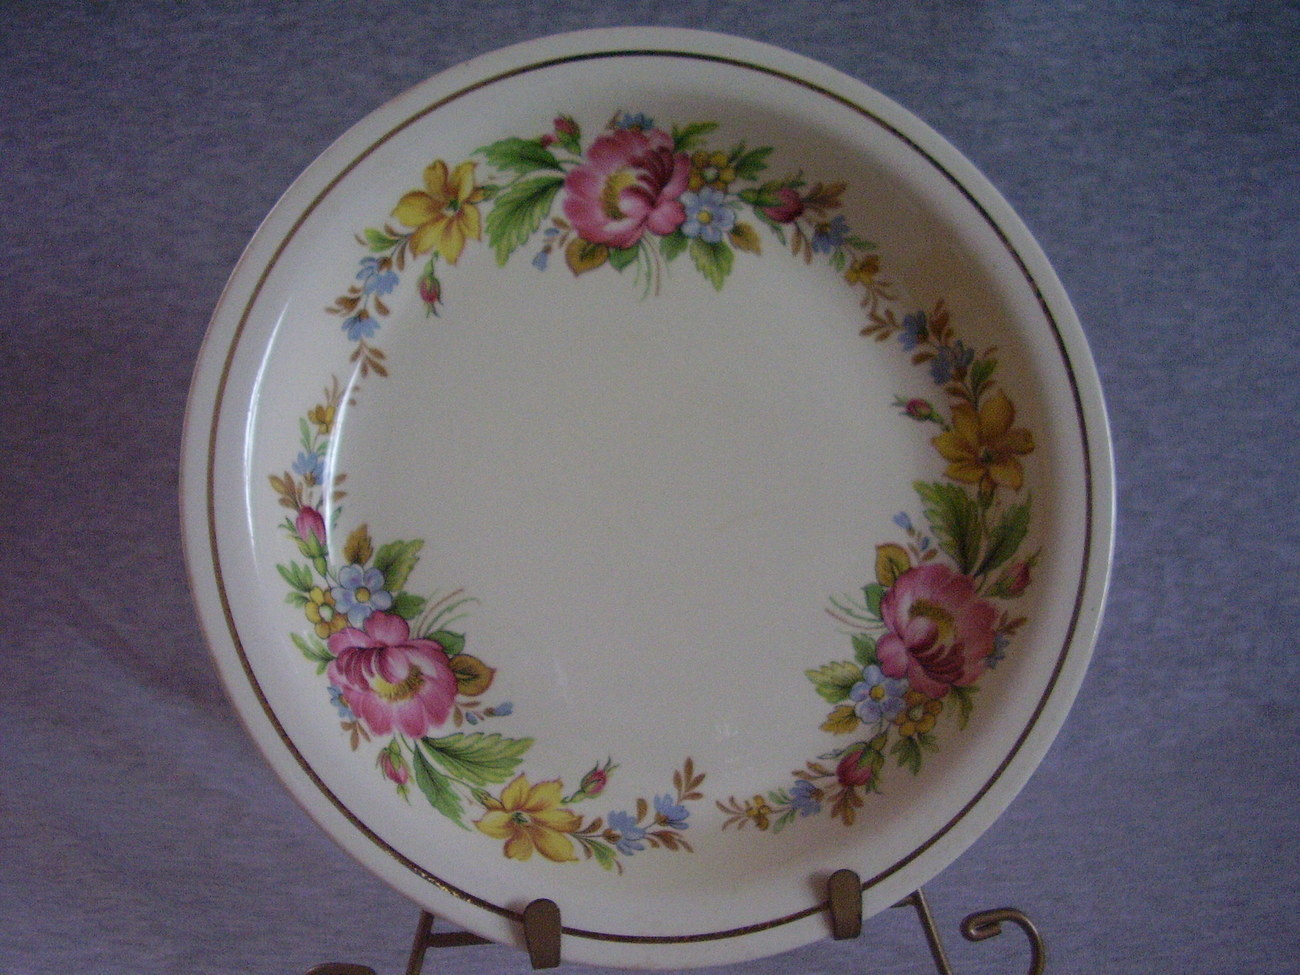 Vintage Homer Laughlin Kitchen Kraft Oven Serve Pie Plate